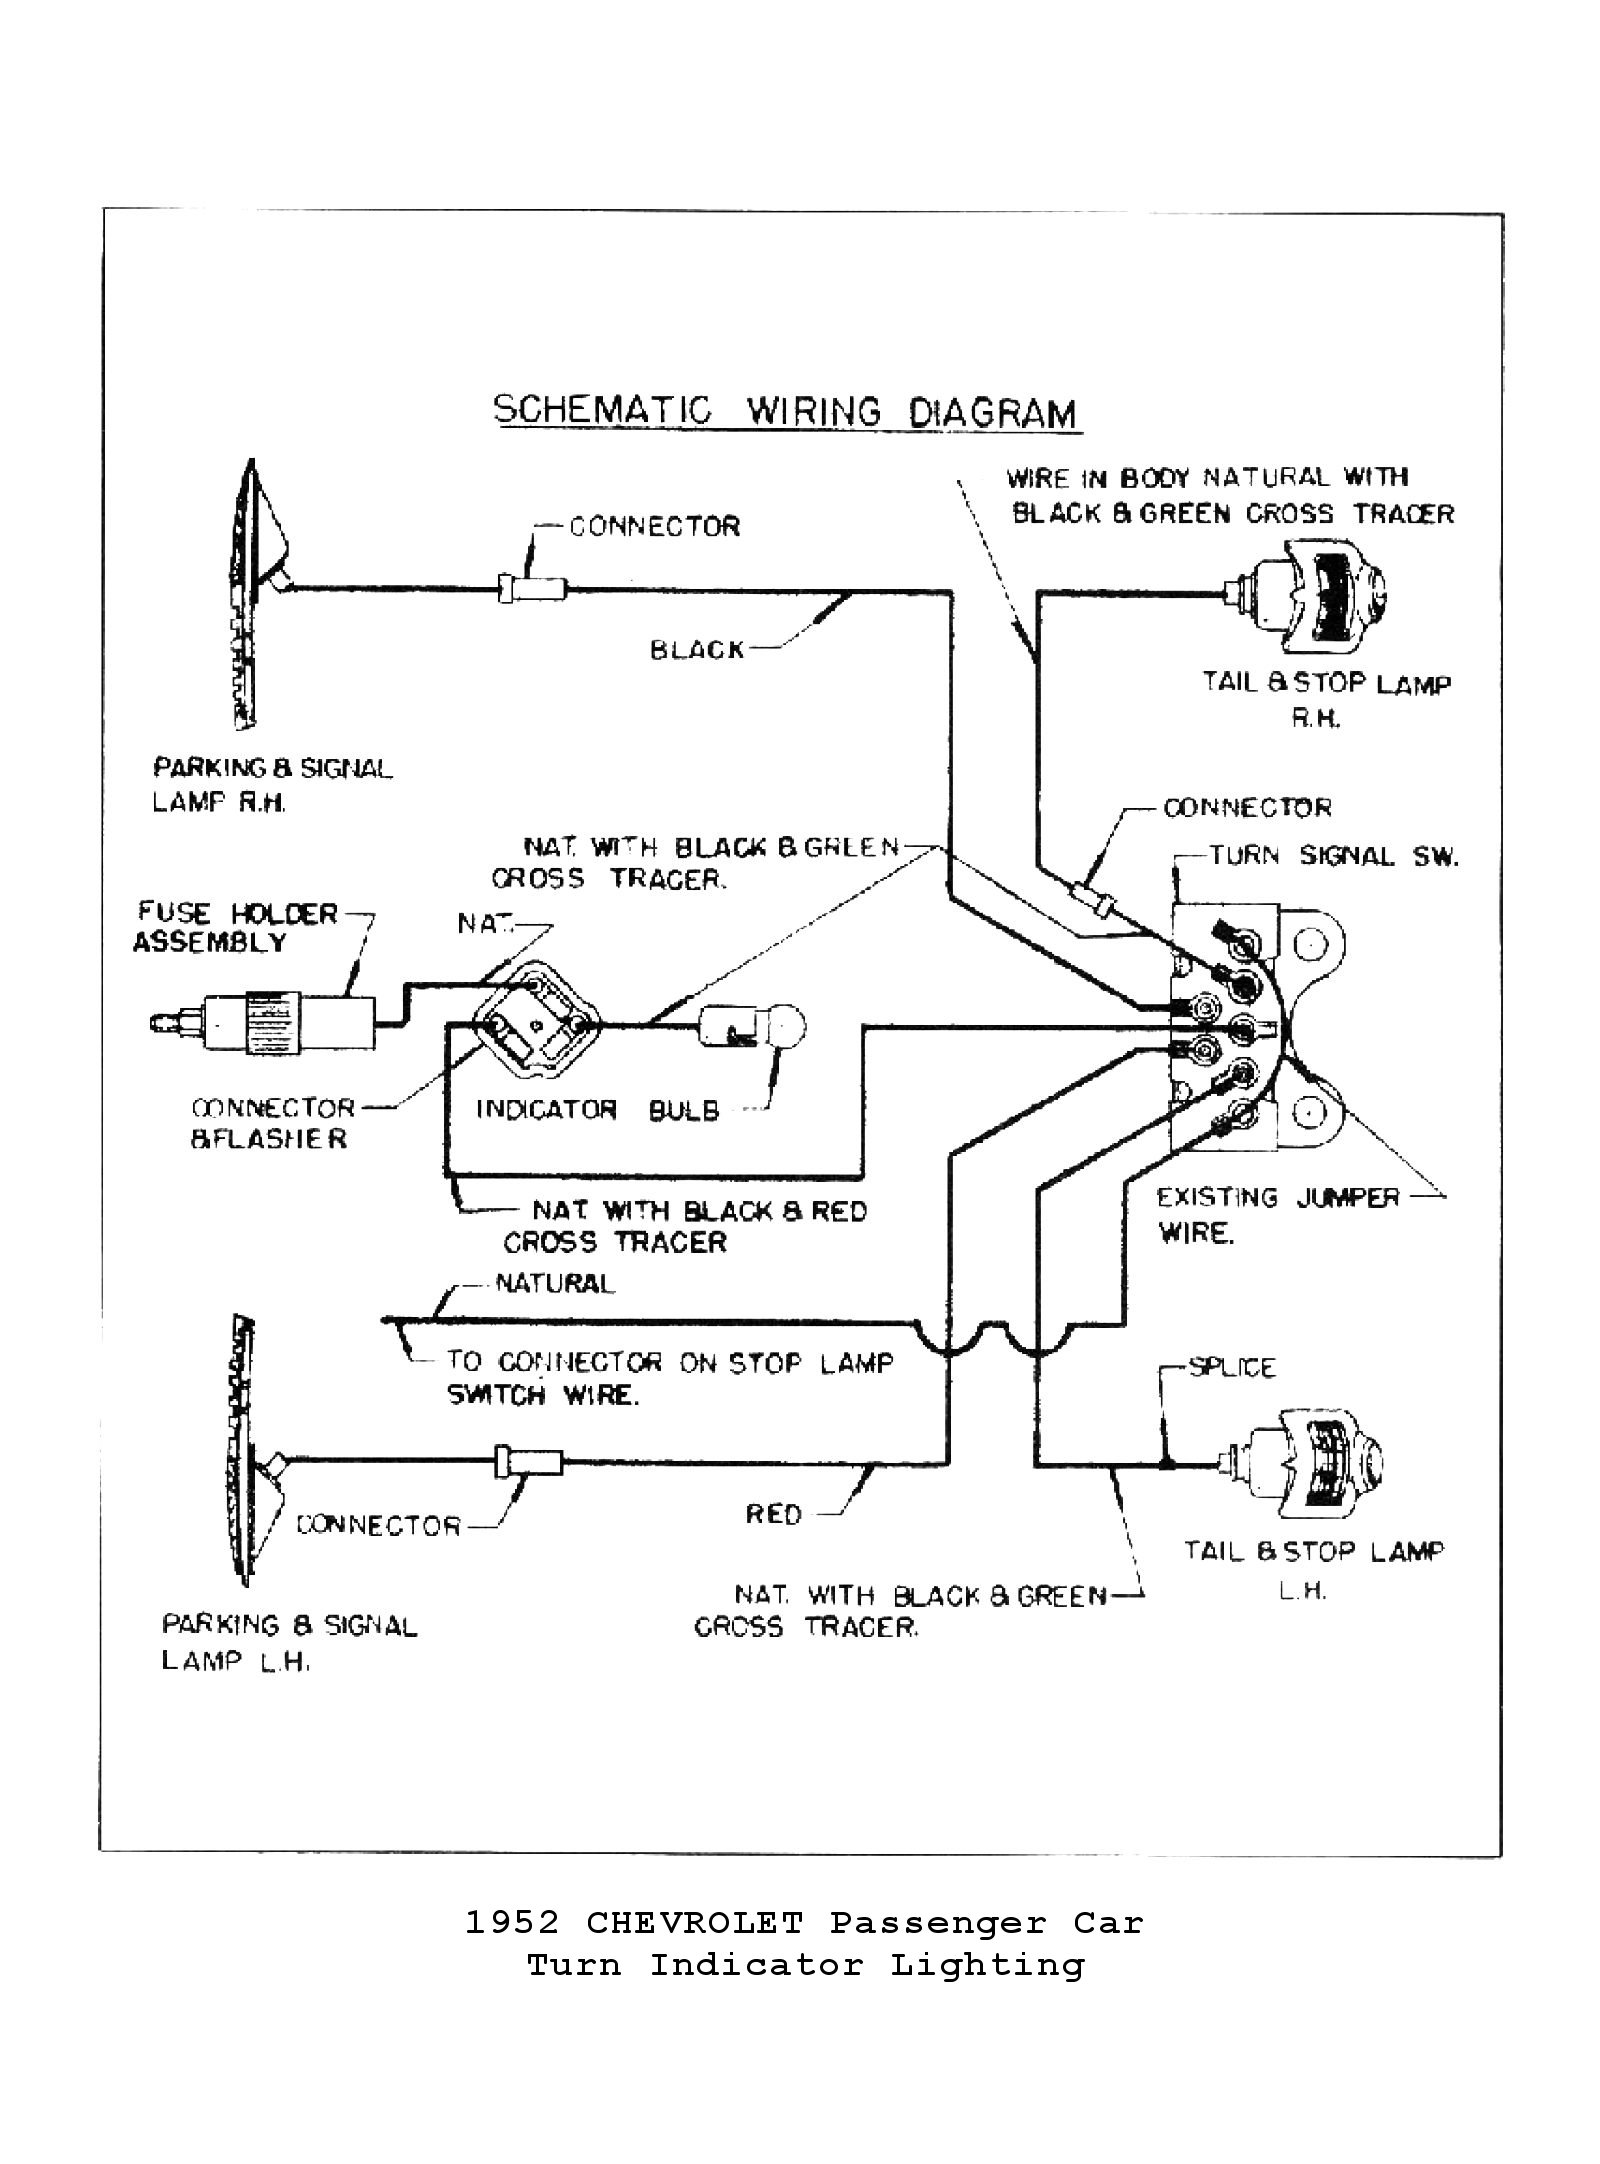 1952, 1952 Car Wiring · 1952 Passenger Car Wiring ...